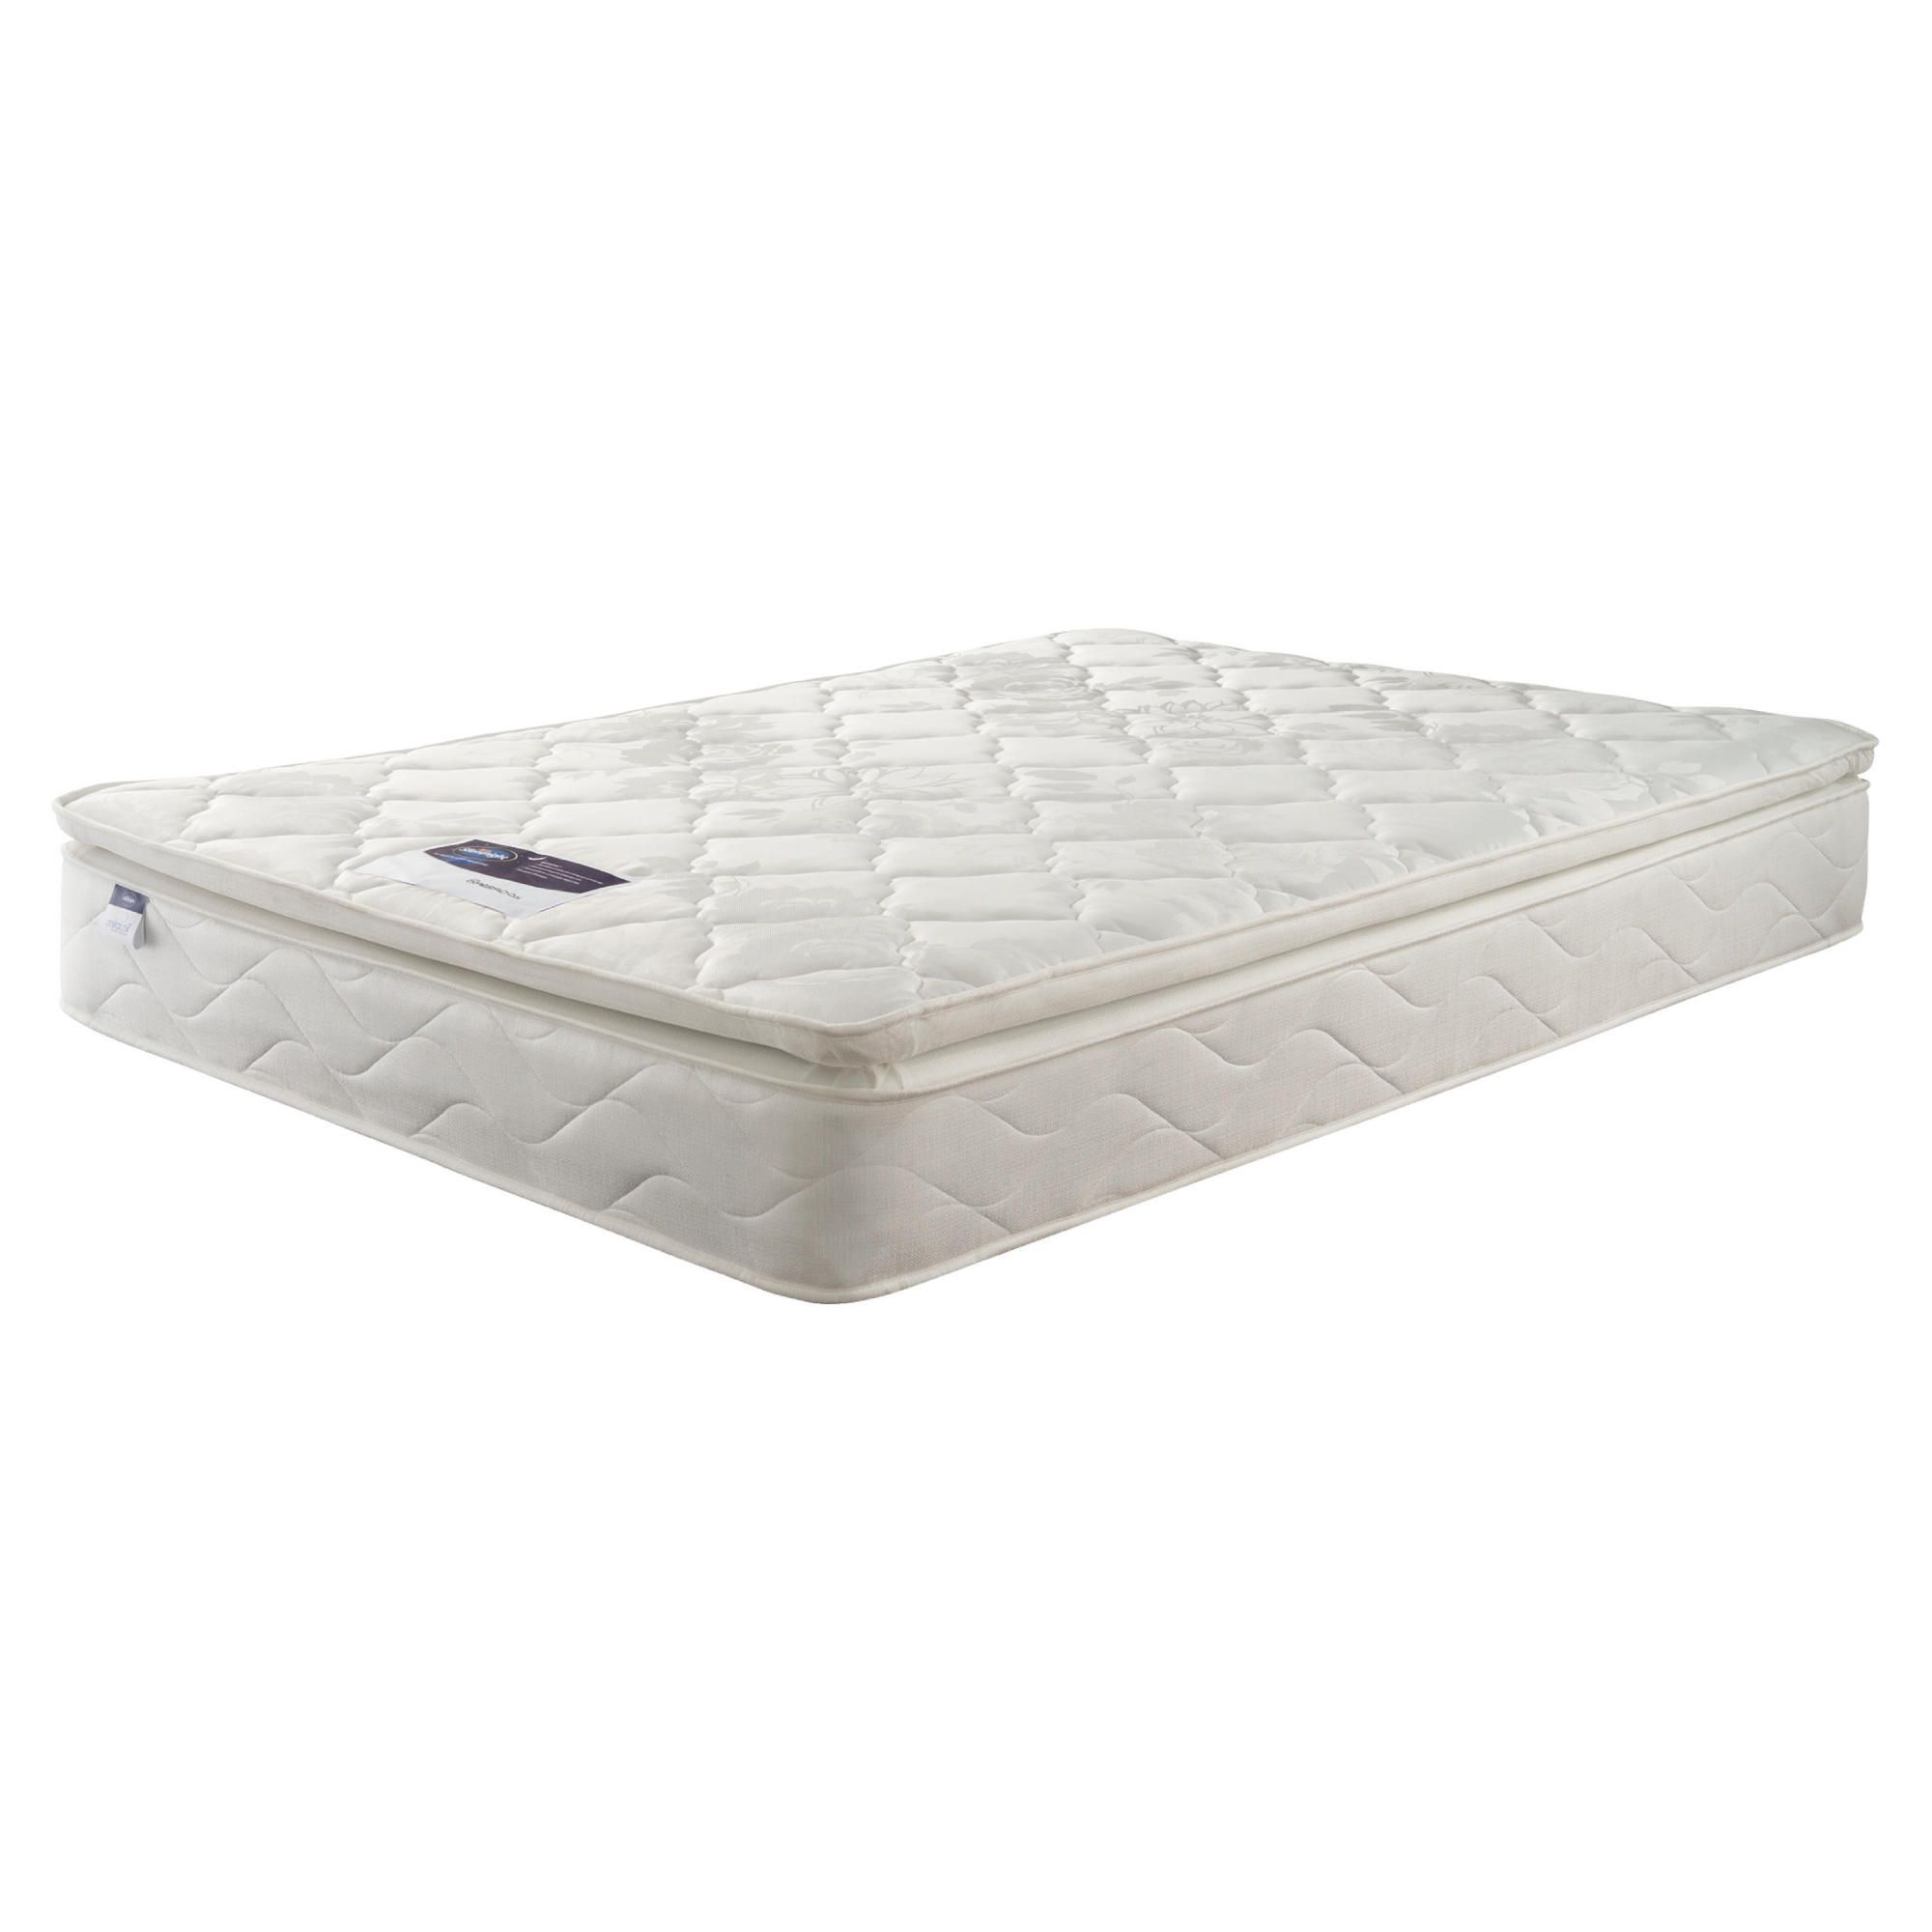 Silentnight Miracoil Pillowtop Fiji King Mattress at Tesco Direct